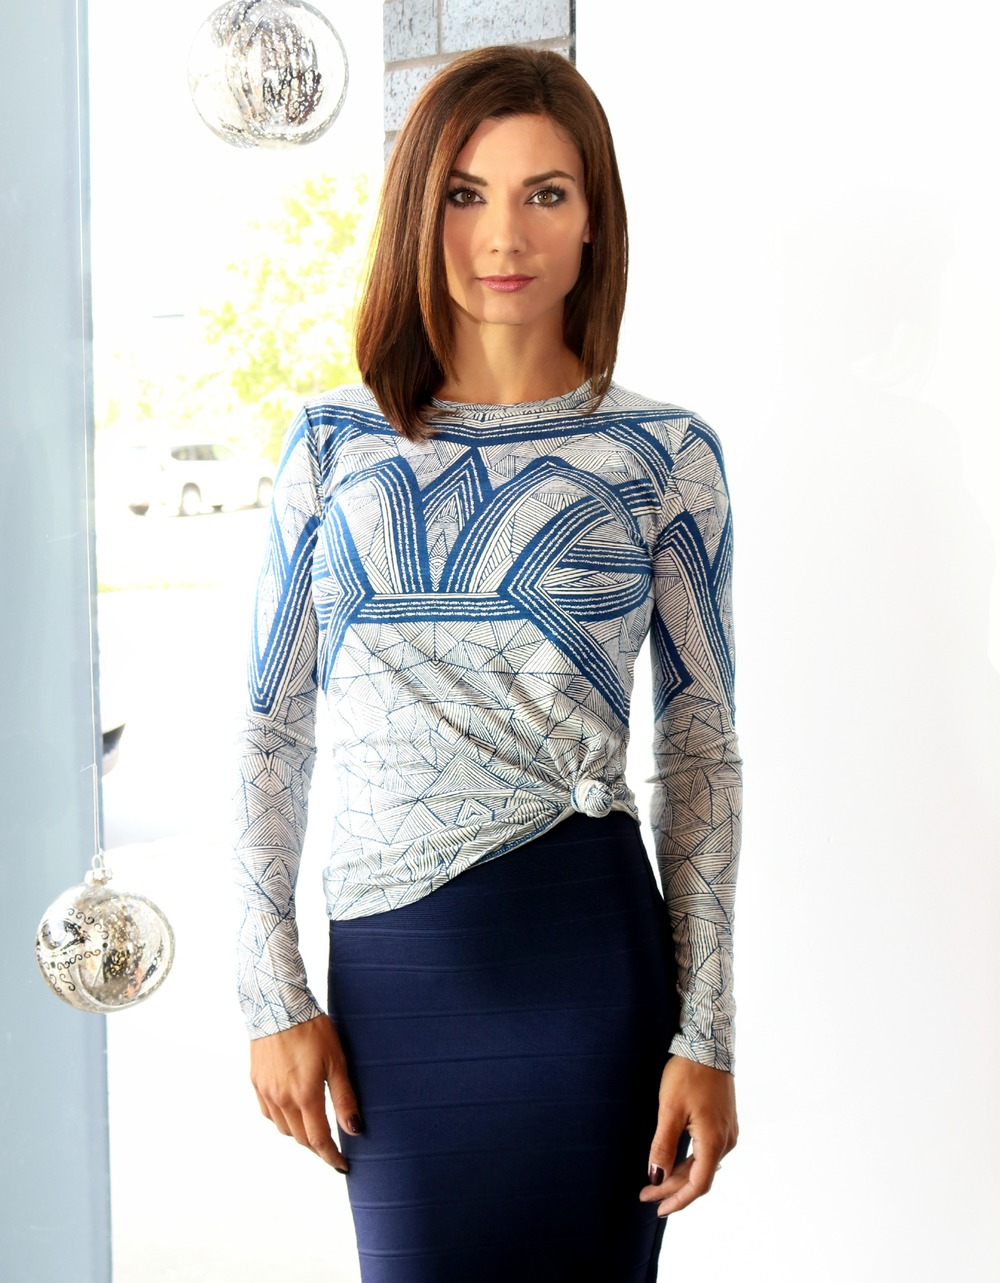 Hervé Leger Aron Arc Top Available Online & In Store ON SALE NOW!